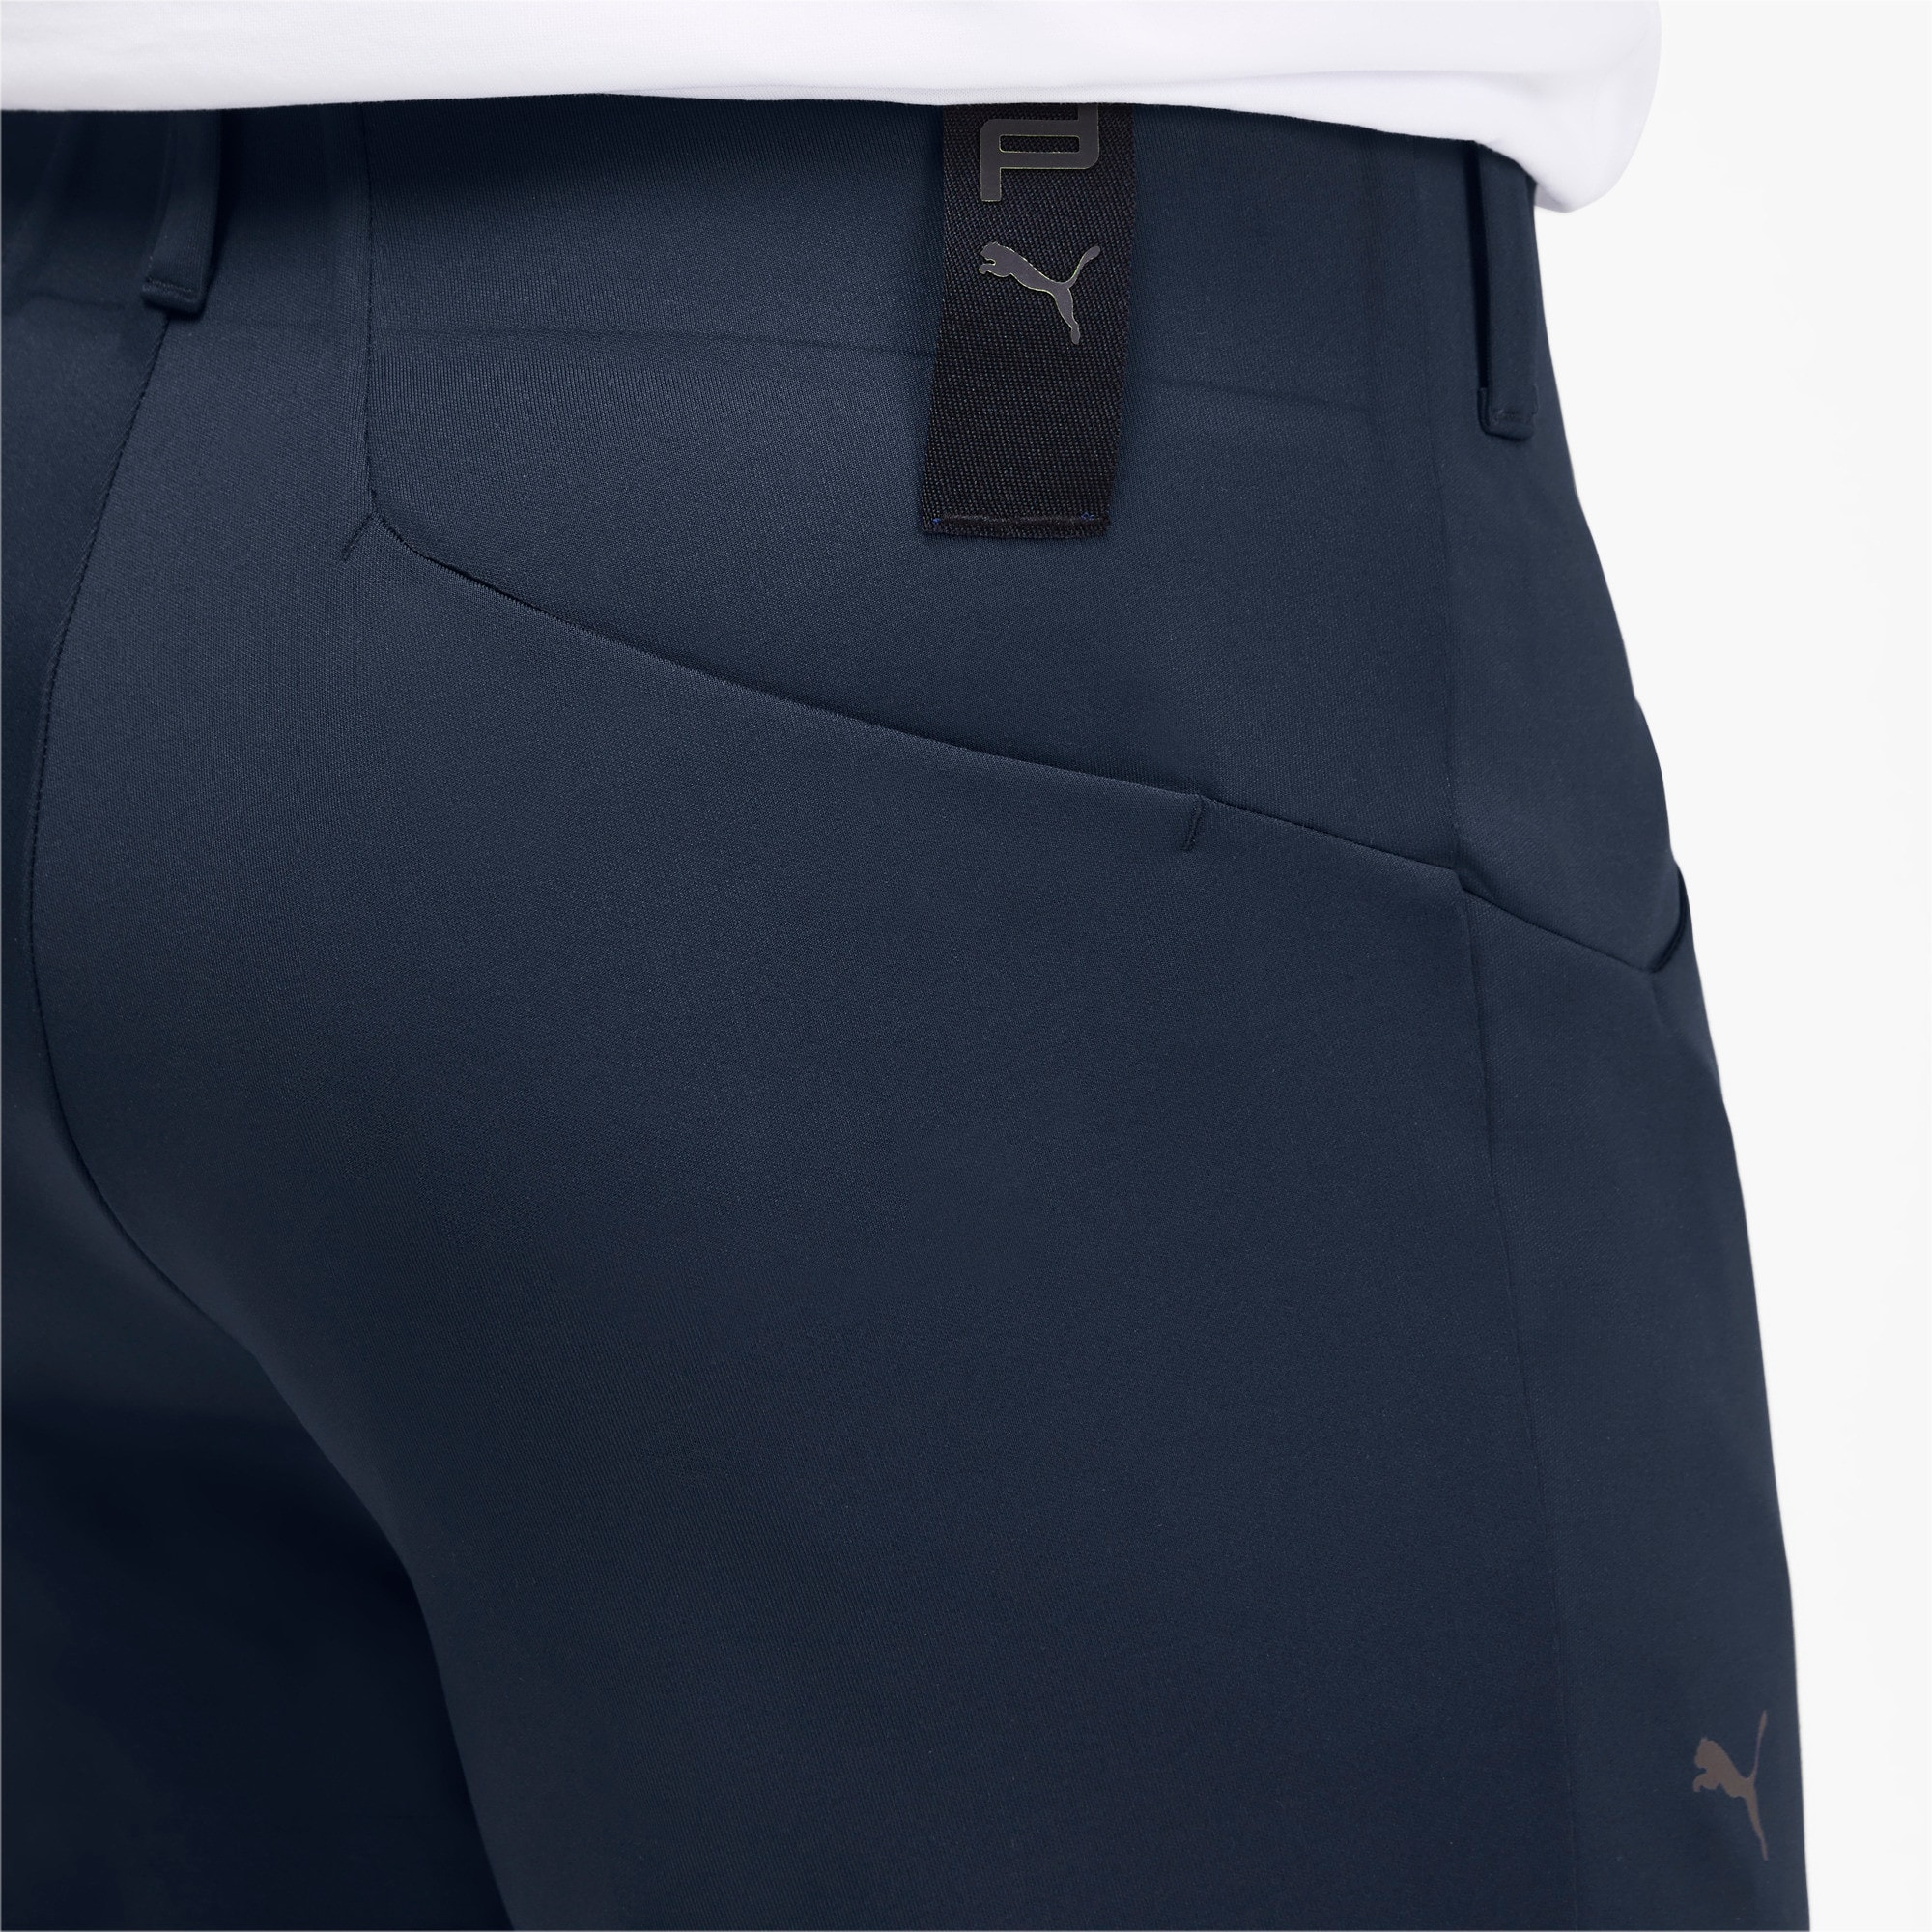 Thumbnail 7 of Pantalon 5 poches Porsche Design pour homme, Navy Blazer, medium